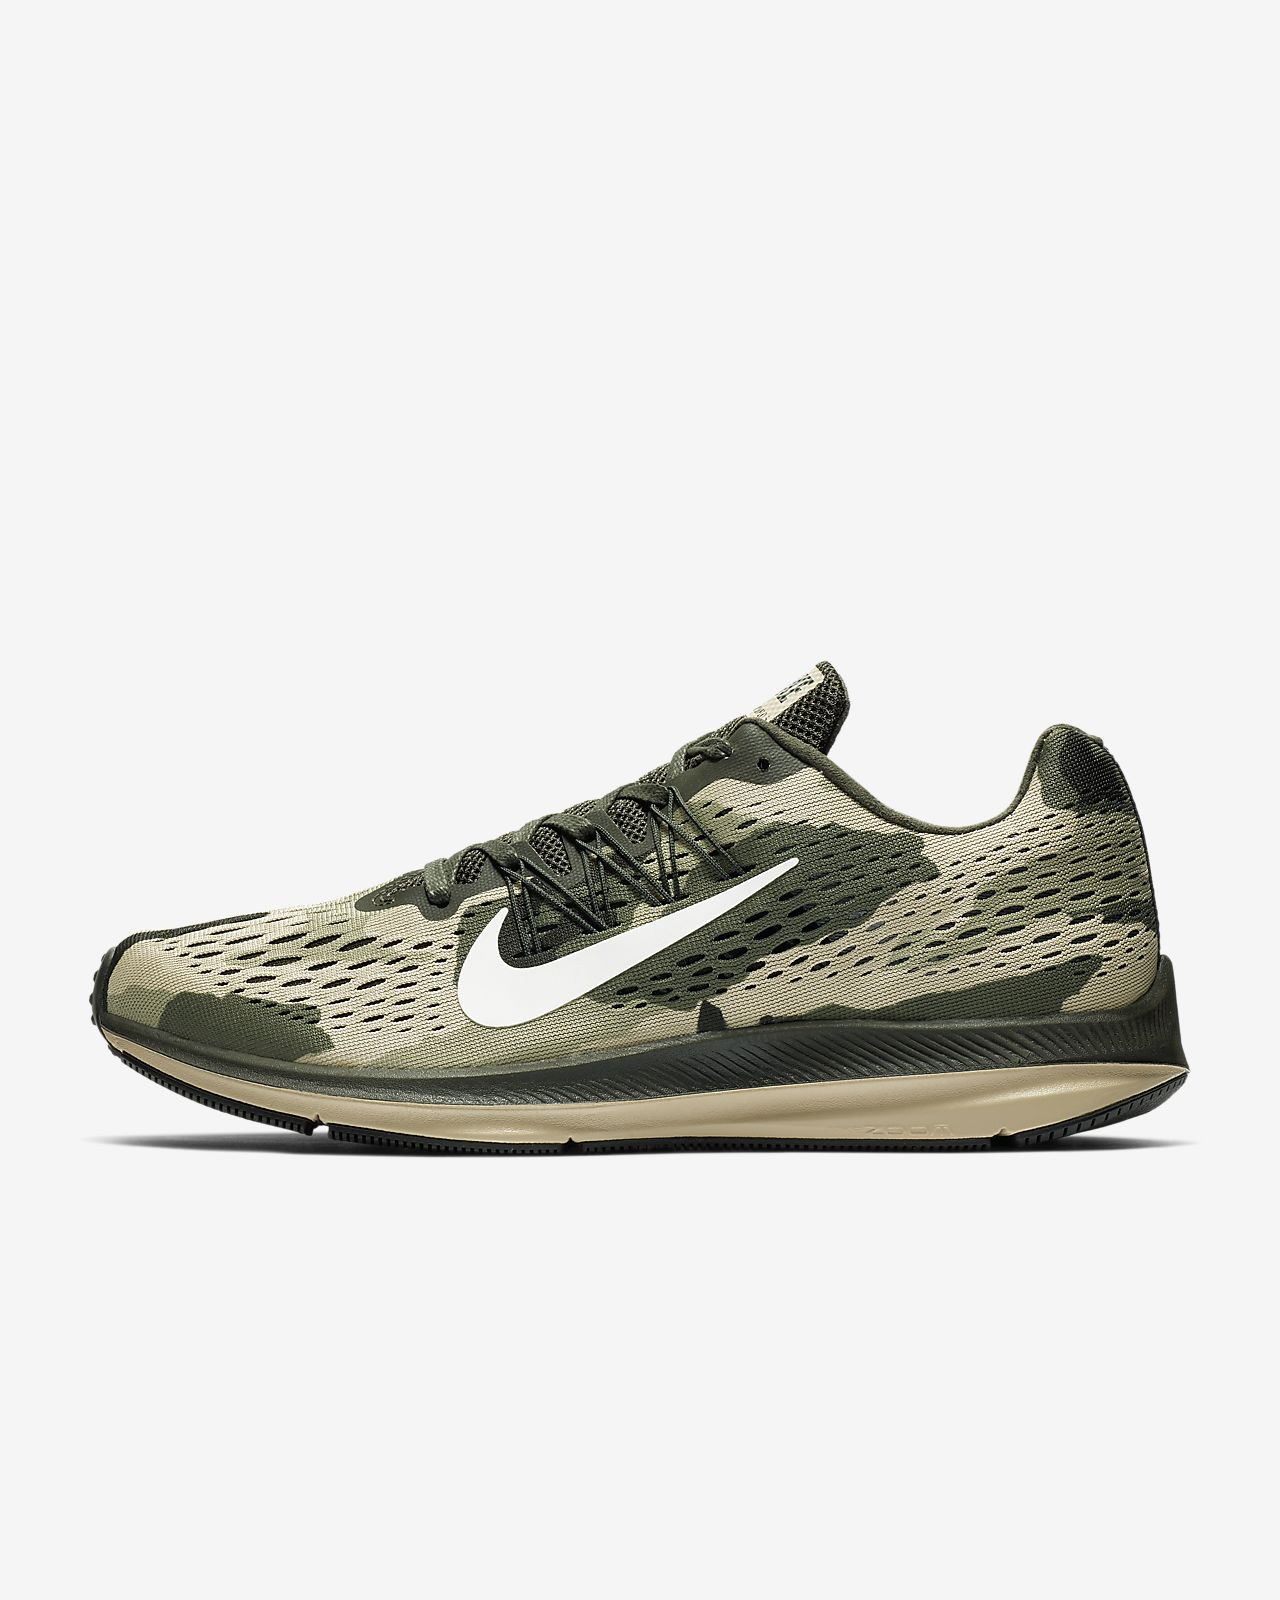 best website 70743 03441 De Chaussure Winflo 5 Zoom Air Pour Homme Camo Running Nike Be UdFdr